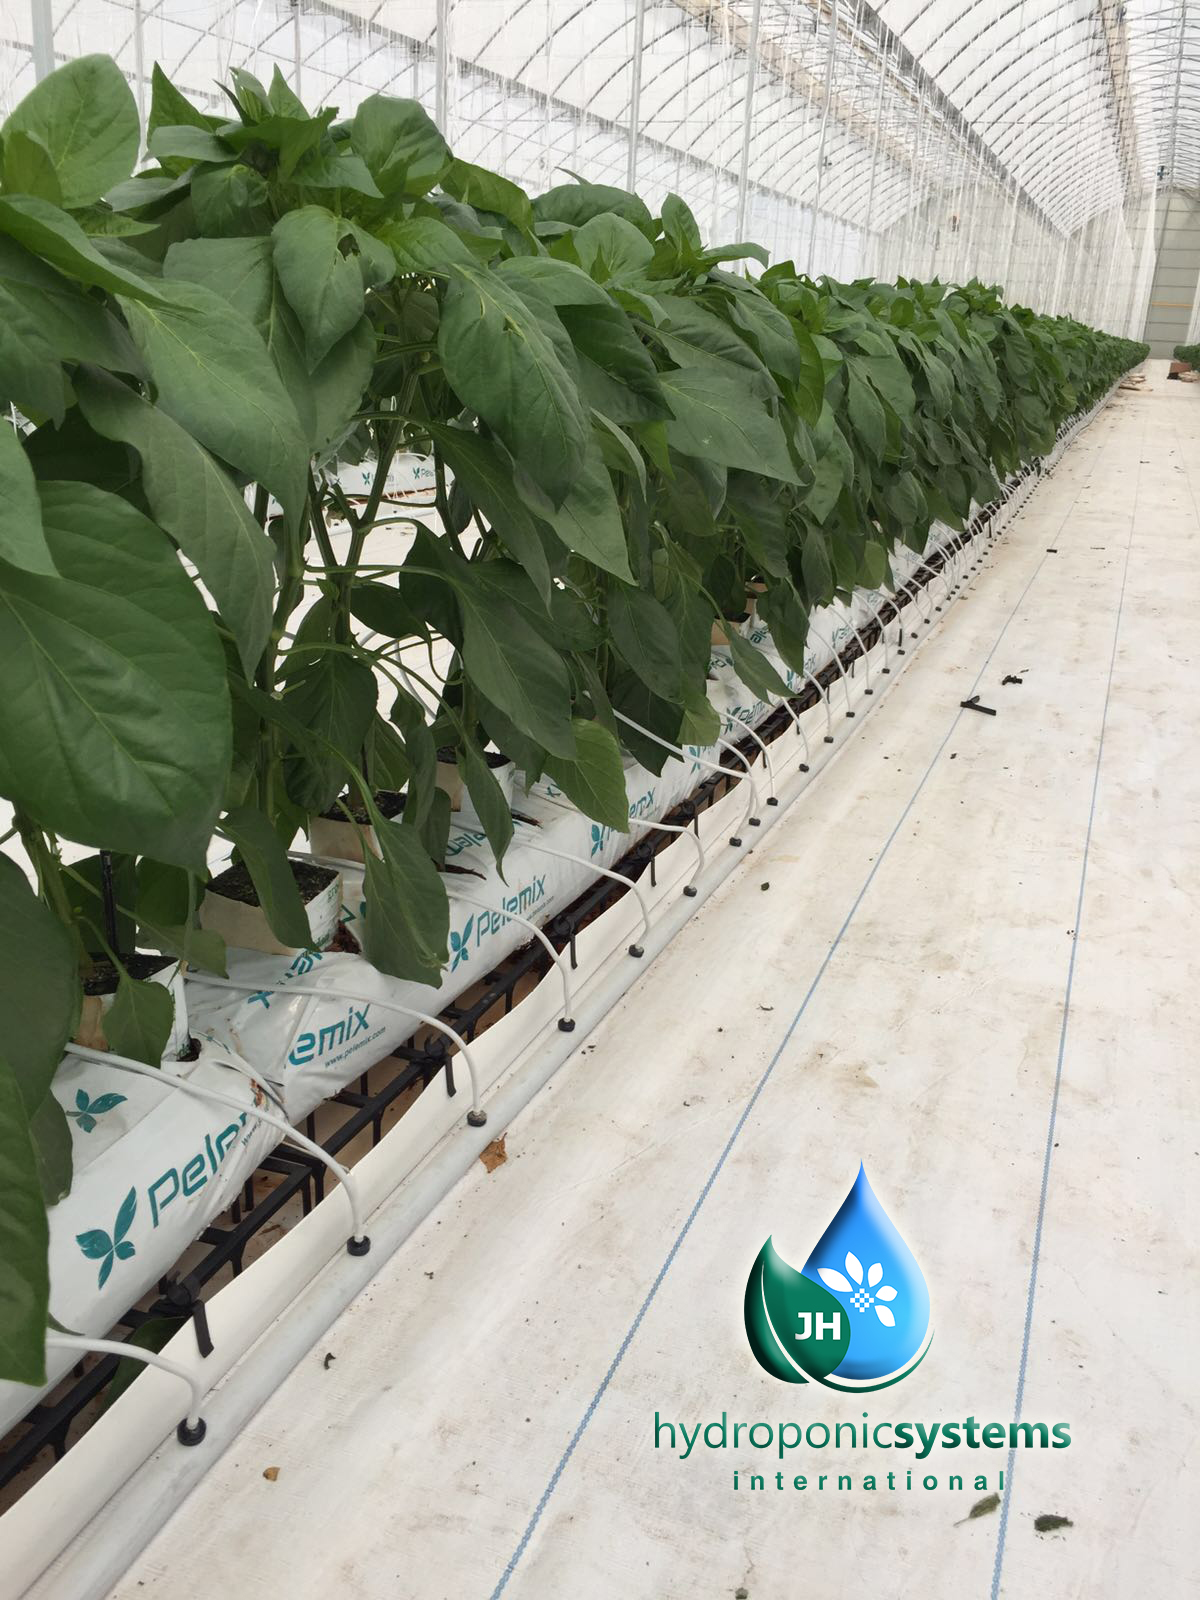 HS Spacer, el producto estrella de Hydroponic System International.